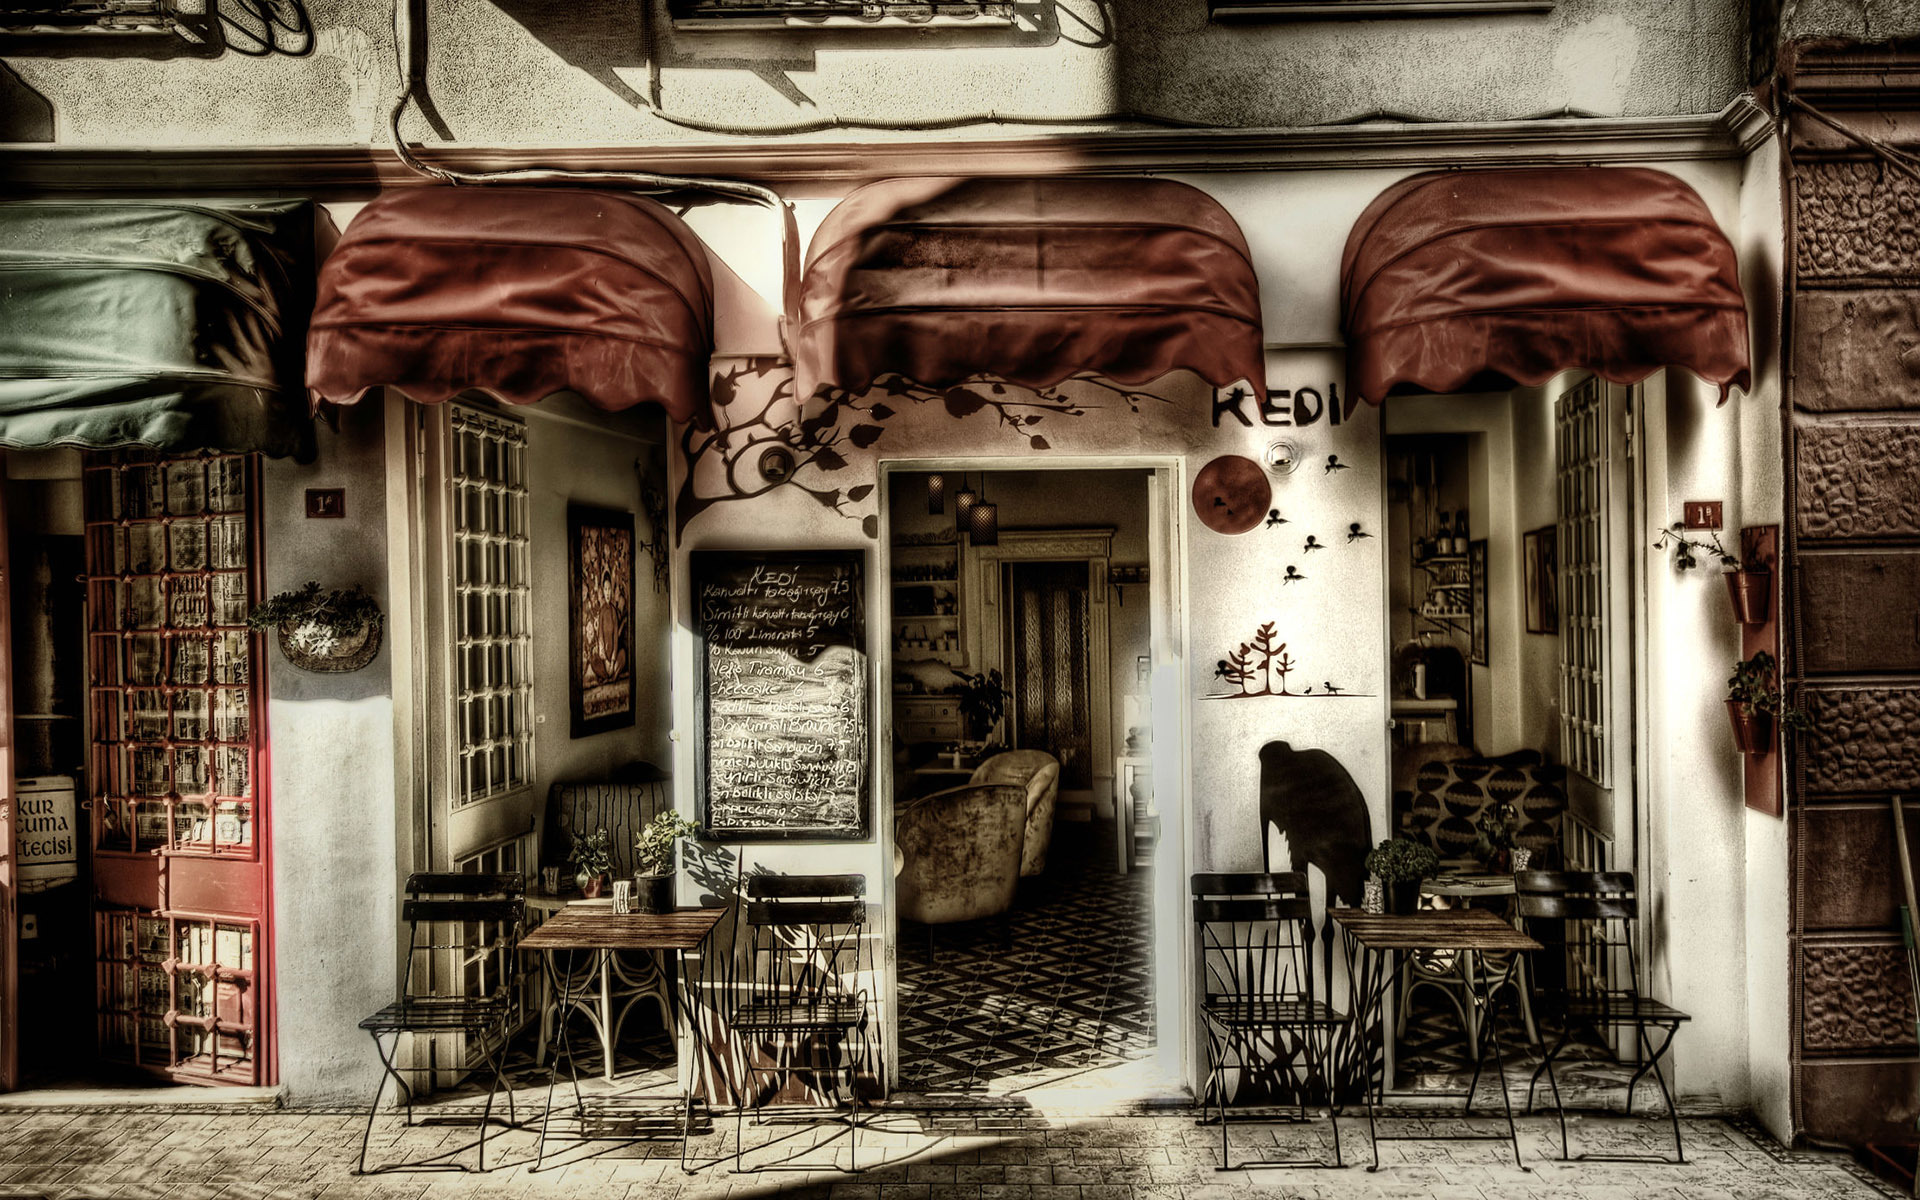 Coffee shop wallpaper wallpapersafari for Old french wallpaper